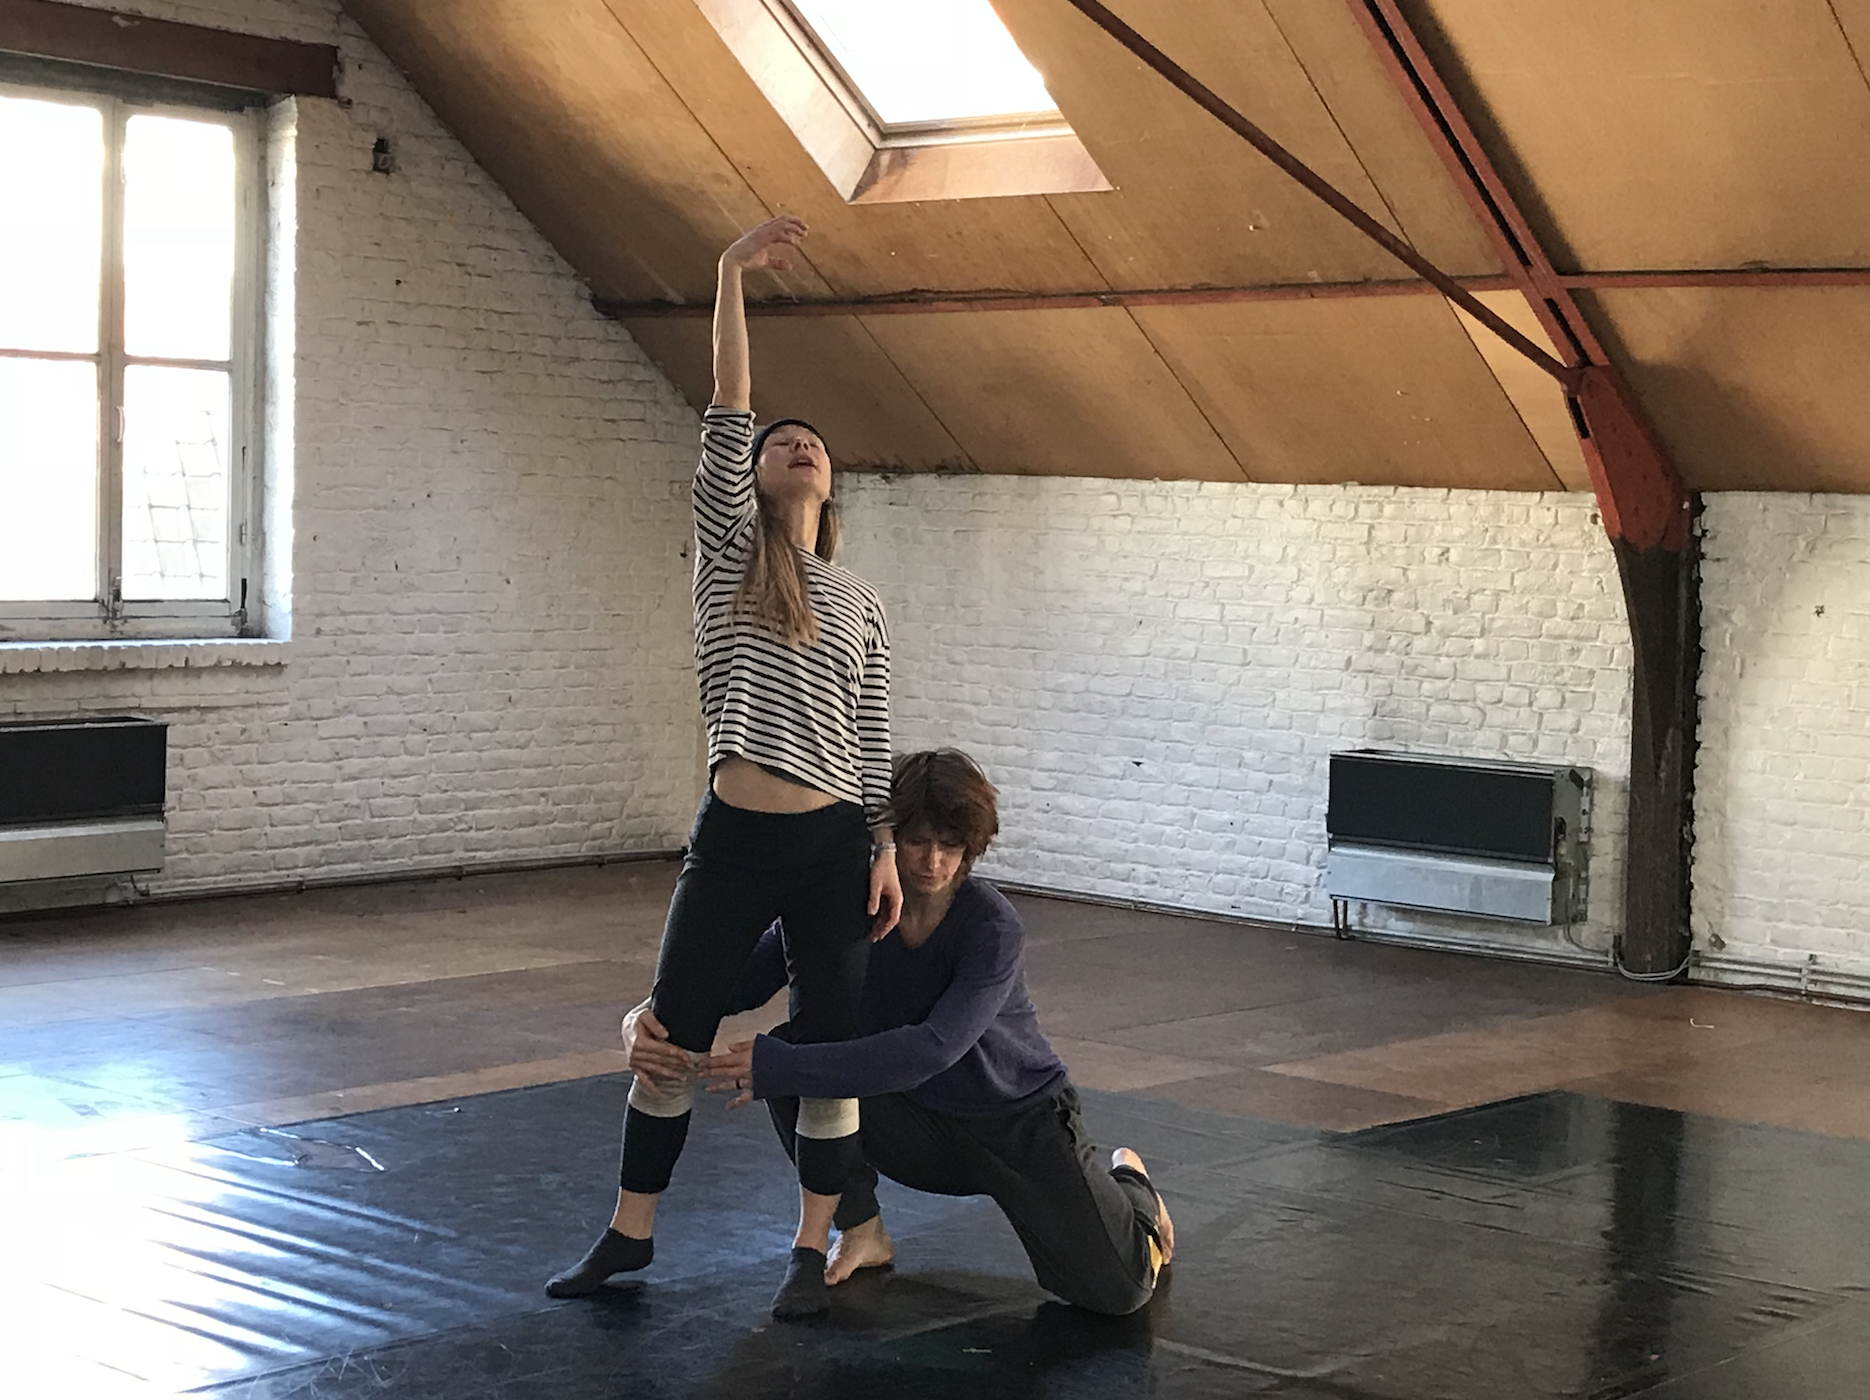 D'Arquian and Doehler re-shaping choreography - 14 February 2018